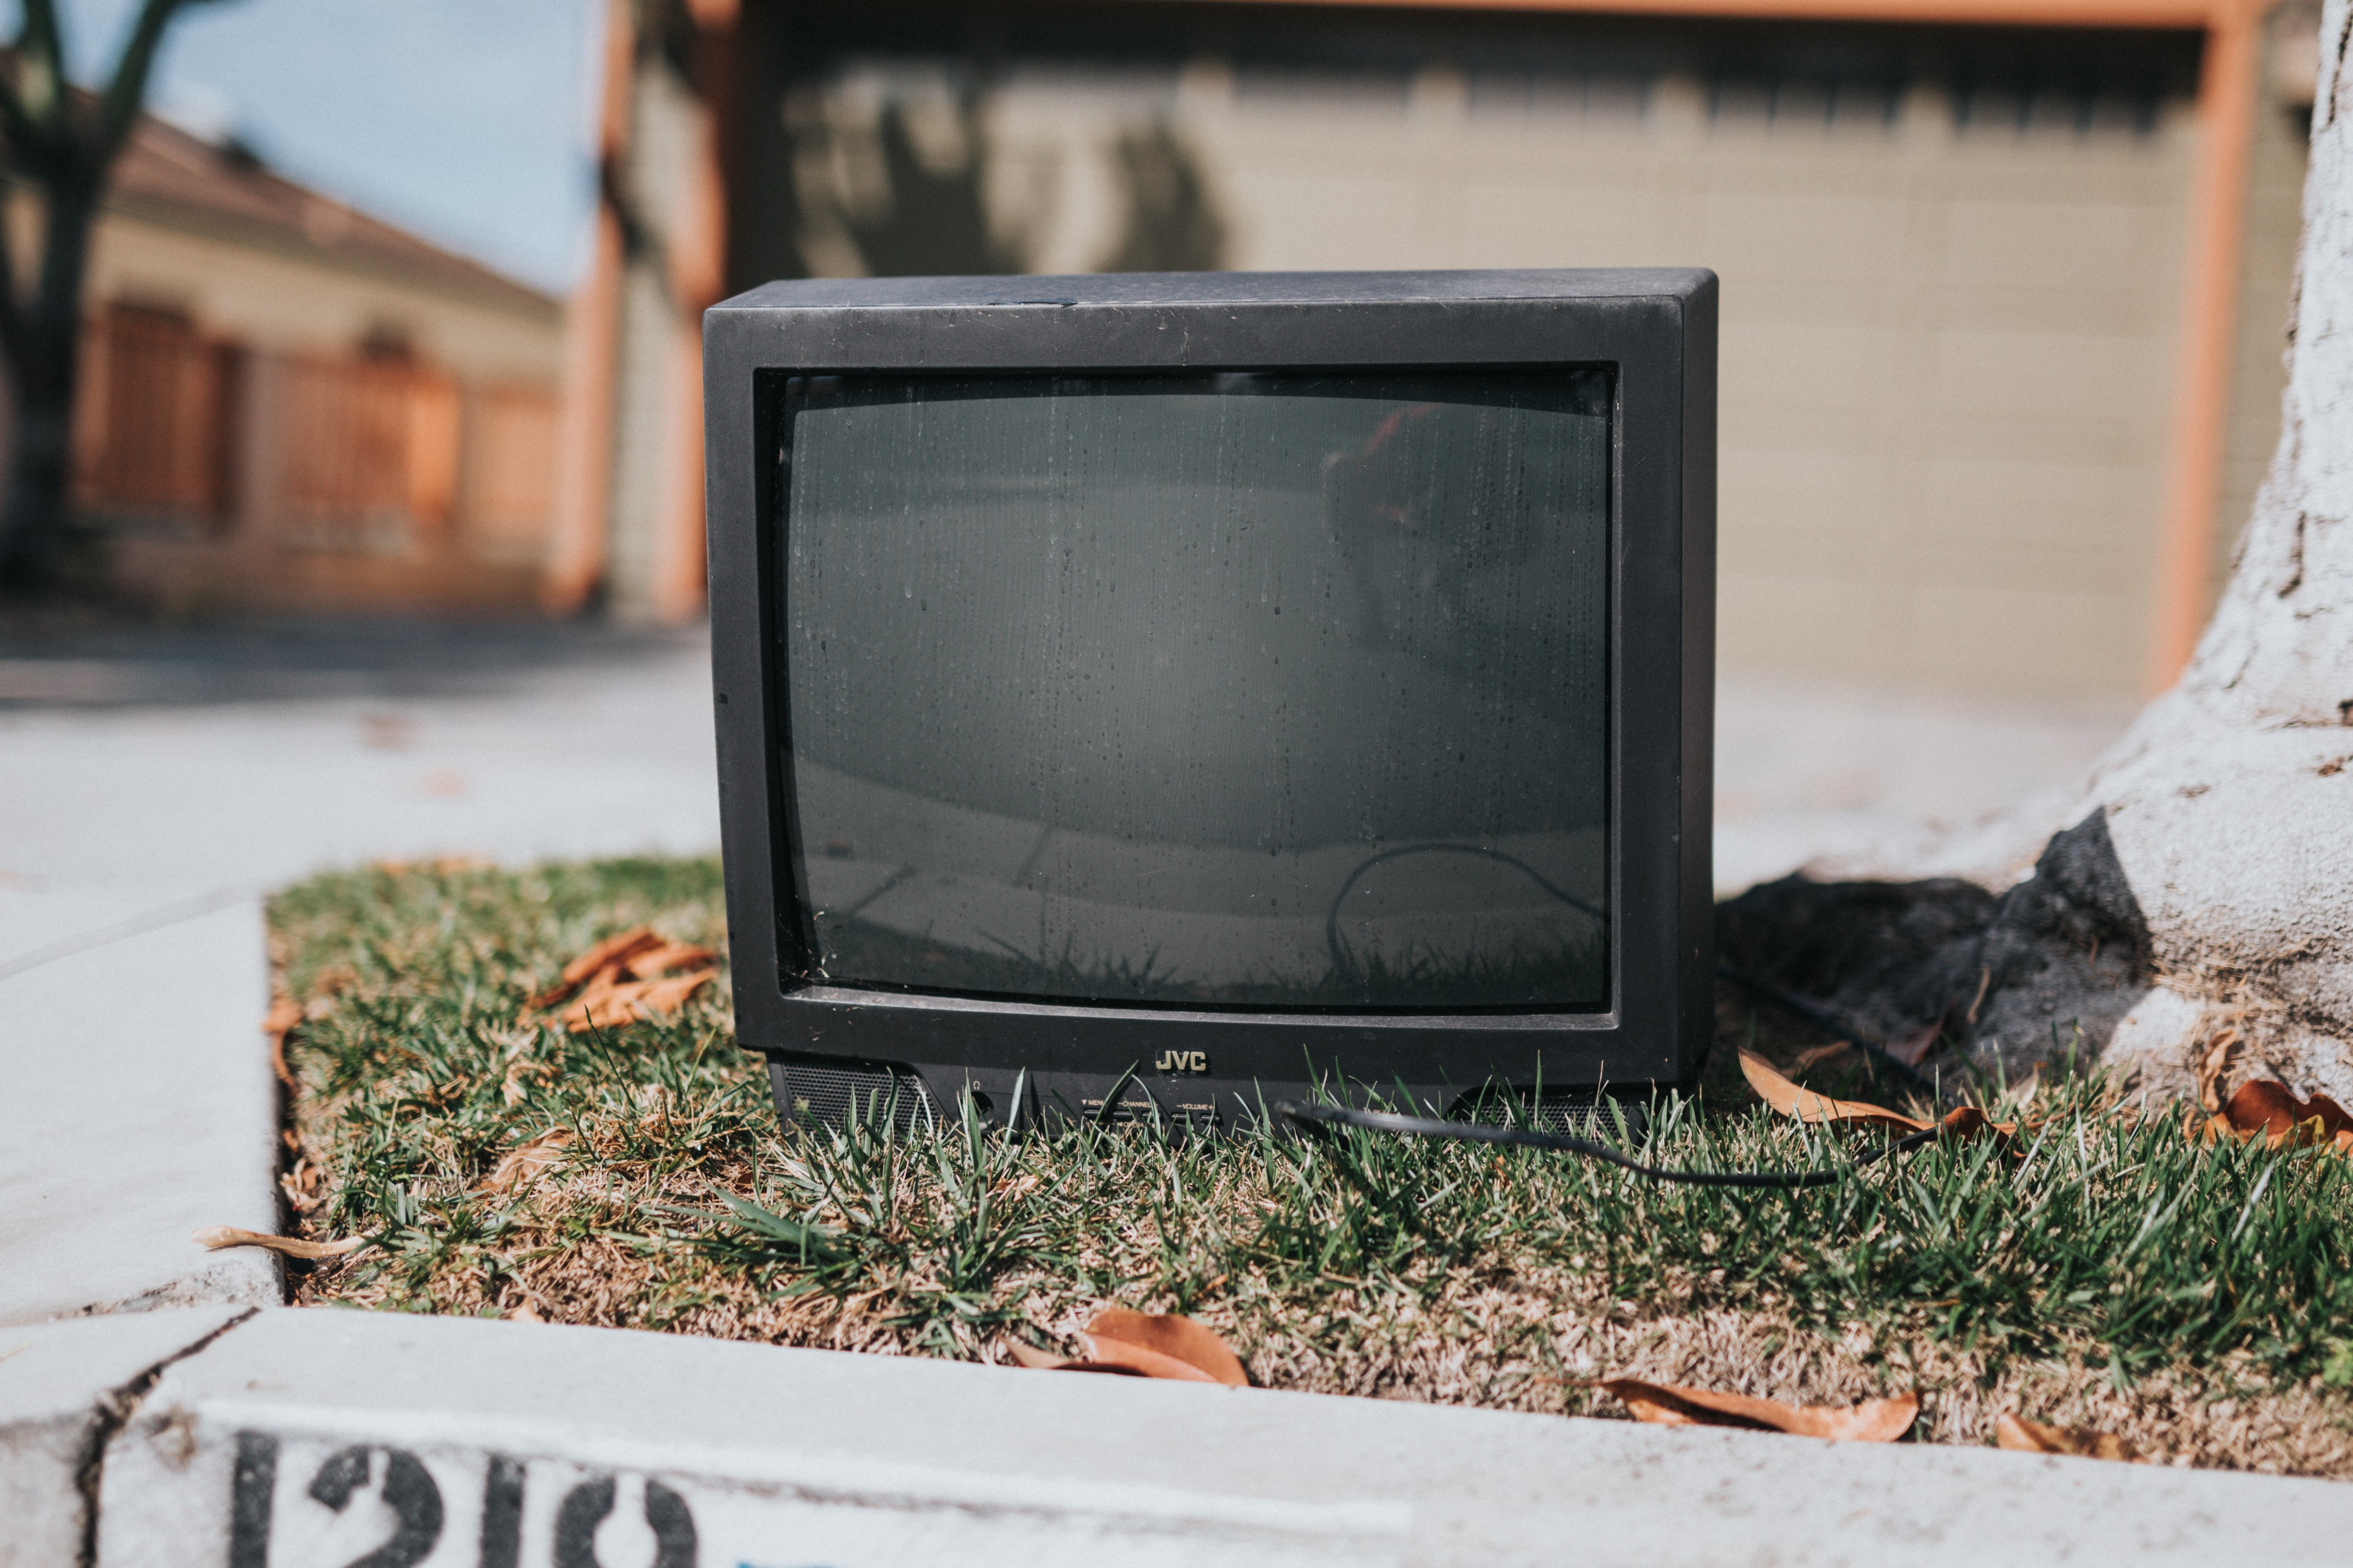 A small TV sitting on the grass on the curbside. A driveway and garage are in the background.